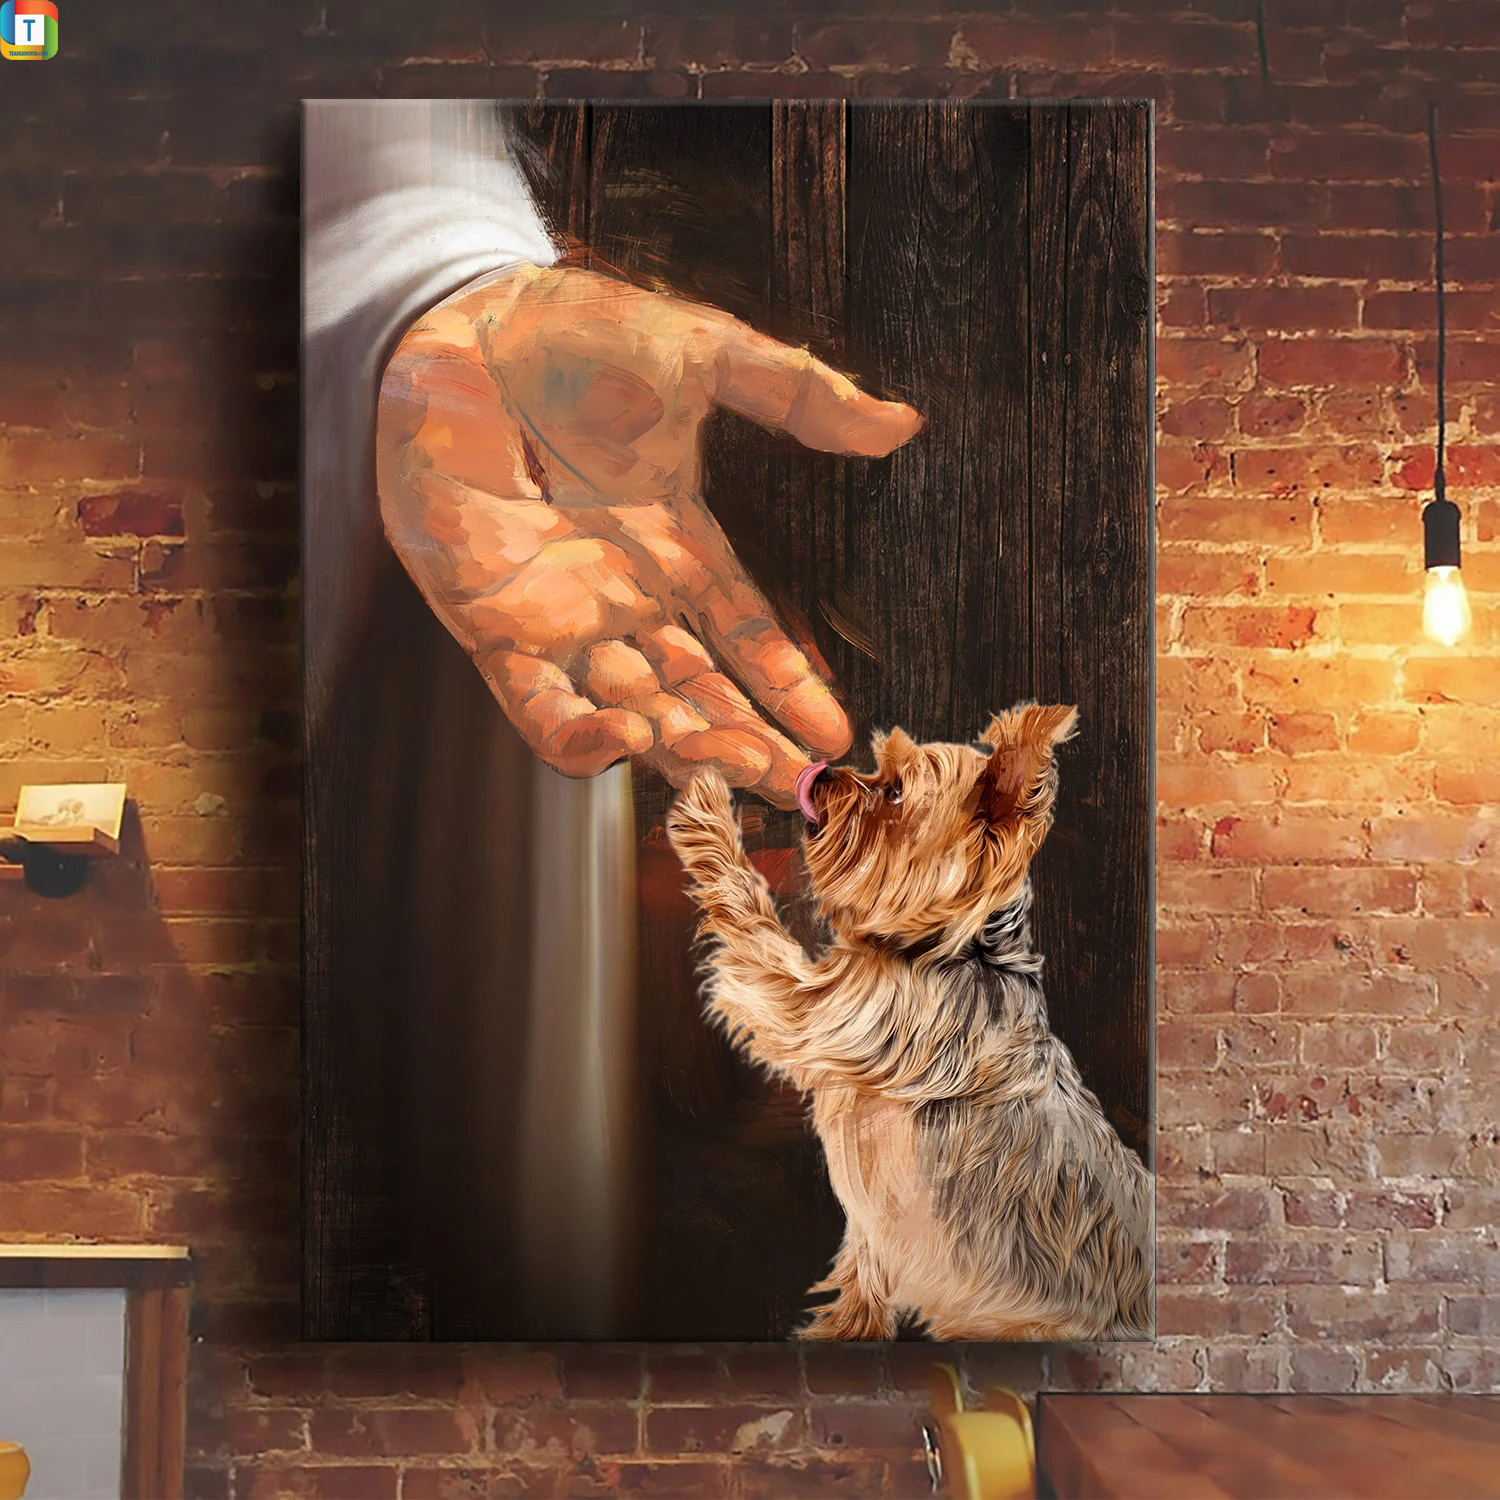 Jesus Yorkshire Terrier in the hand of God canvasJesus Yorkshire Terrier in the hand of God canvas